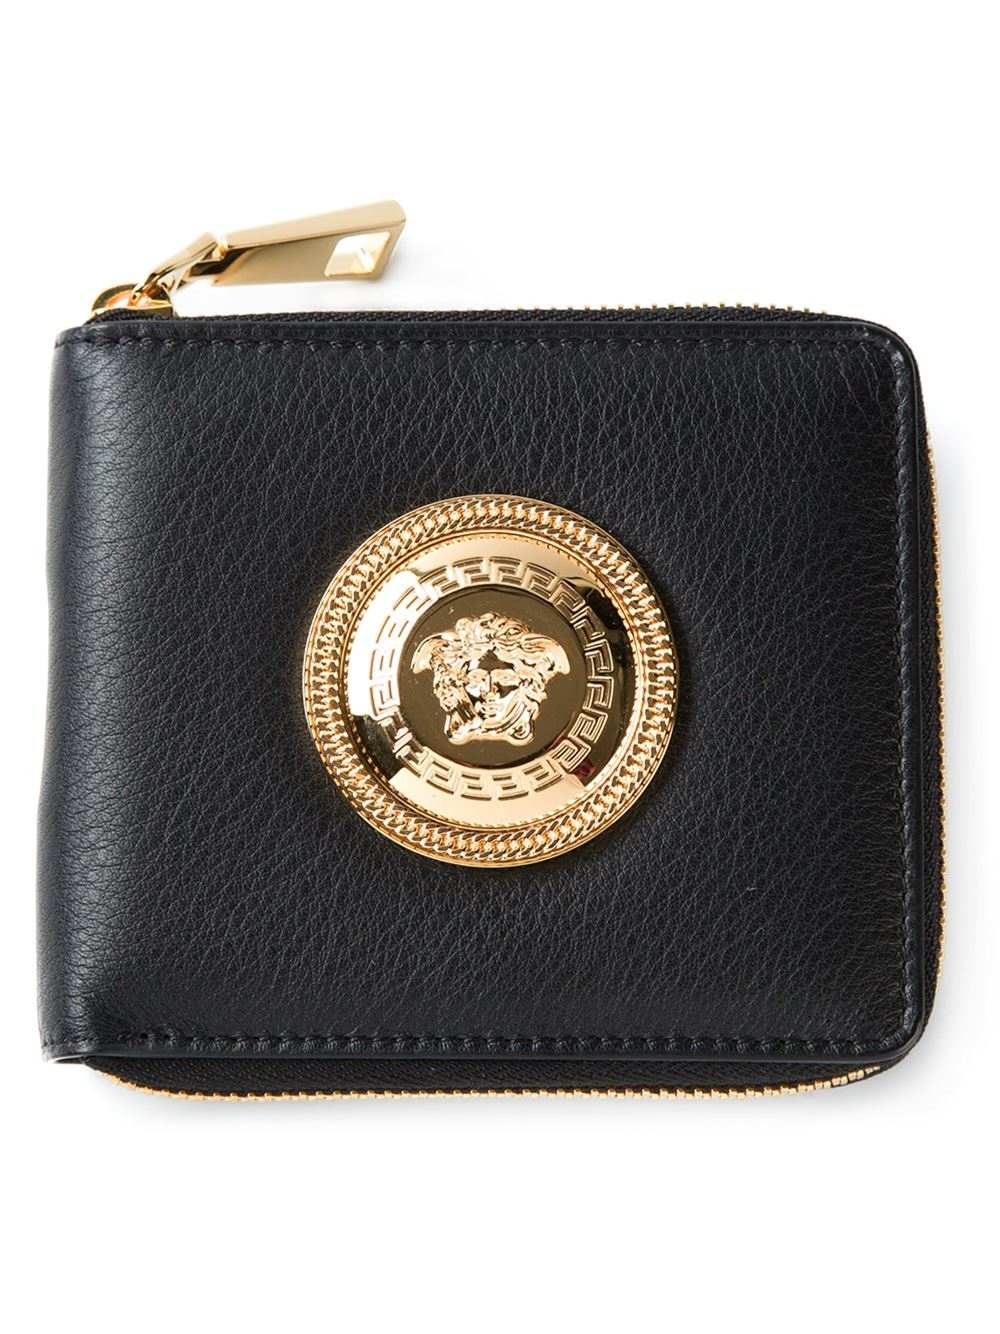 Offers Gianni Versace Men's Wallets and Leather Accessories from the Current Collection.